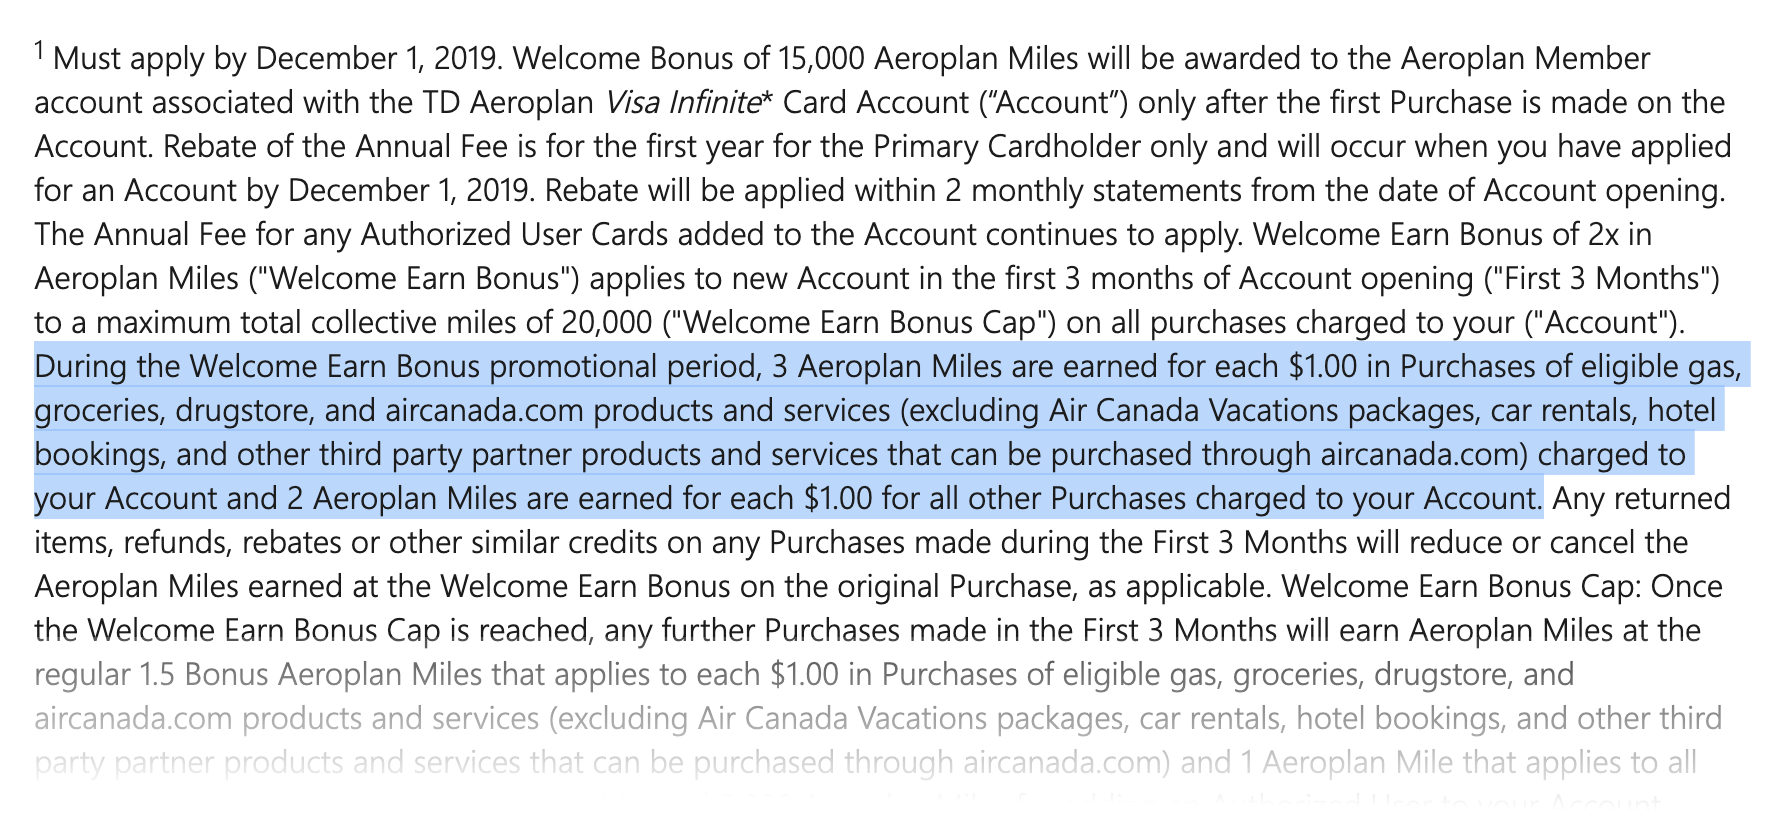 Fall 2019 Offers on the TD Aeroplan Cards | Prince of Travel